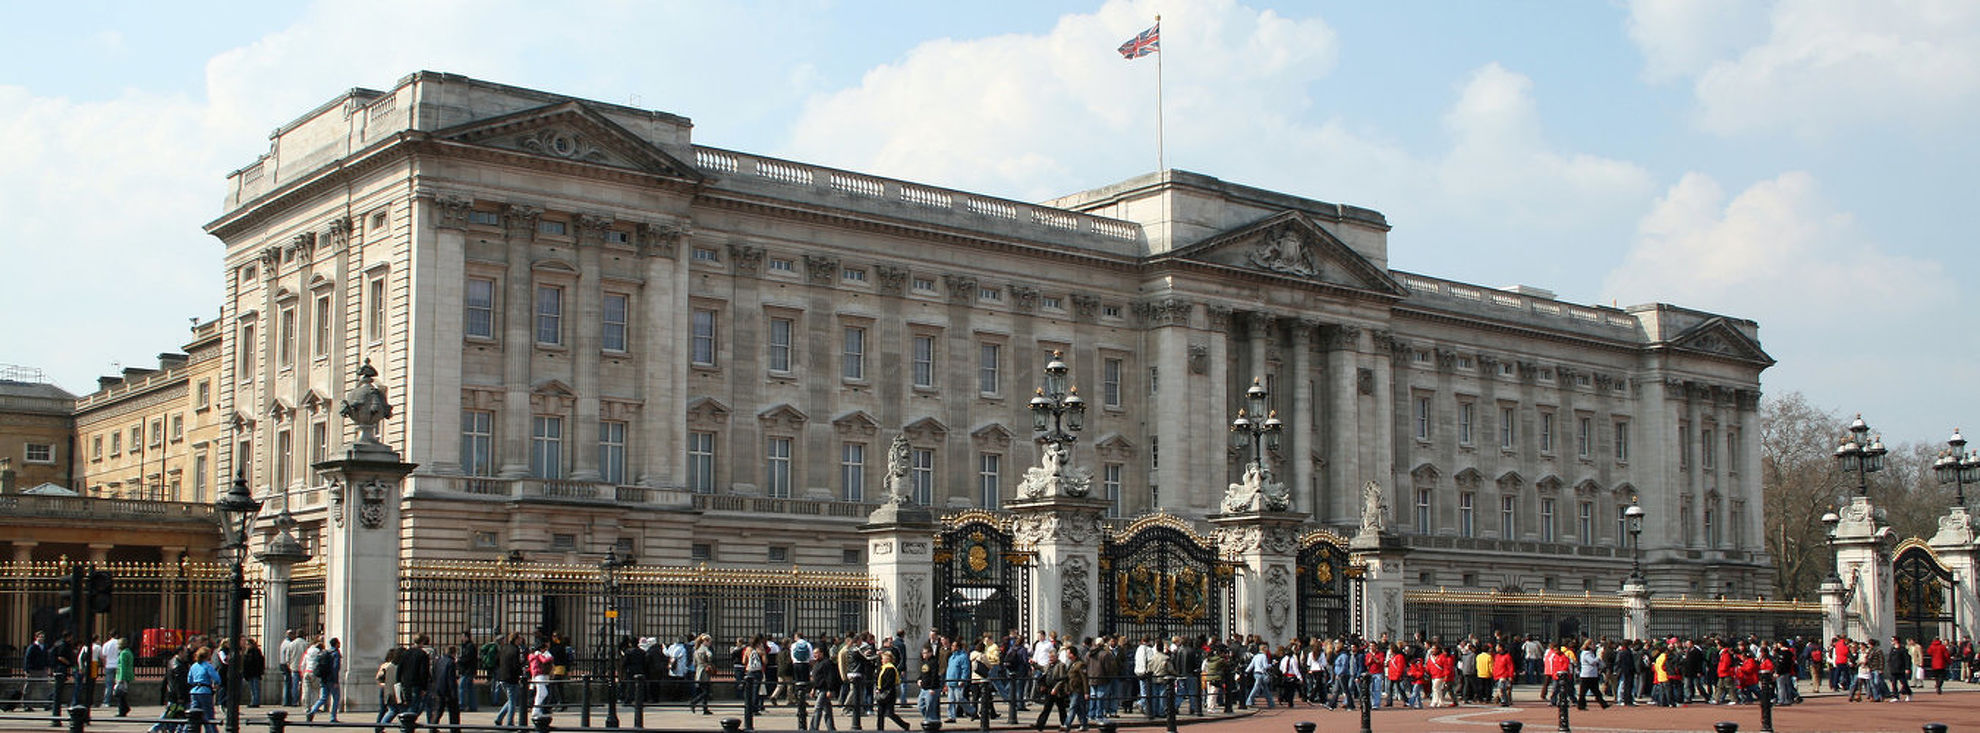 Explore Buckingham Palace